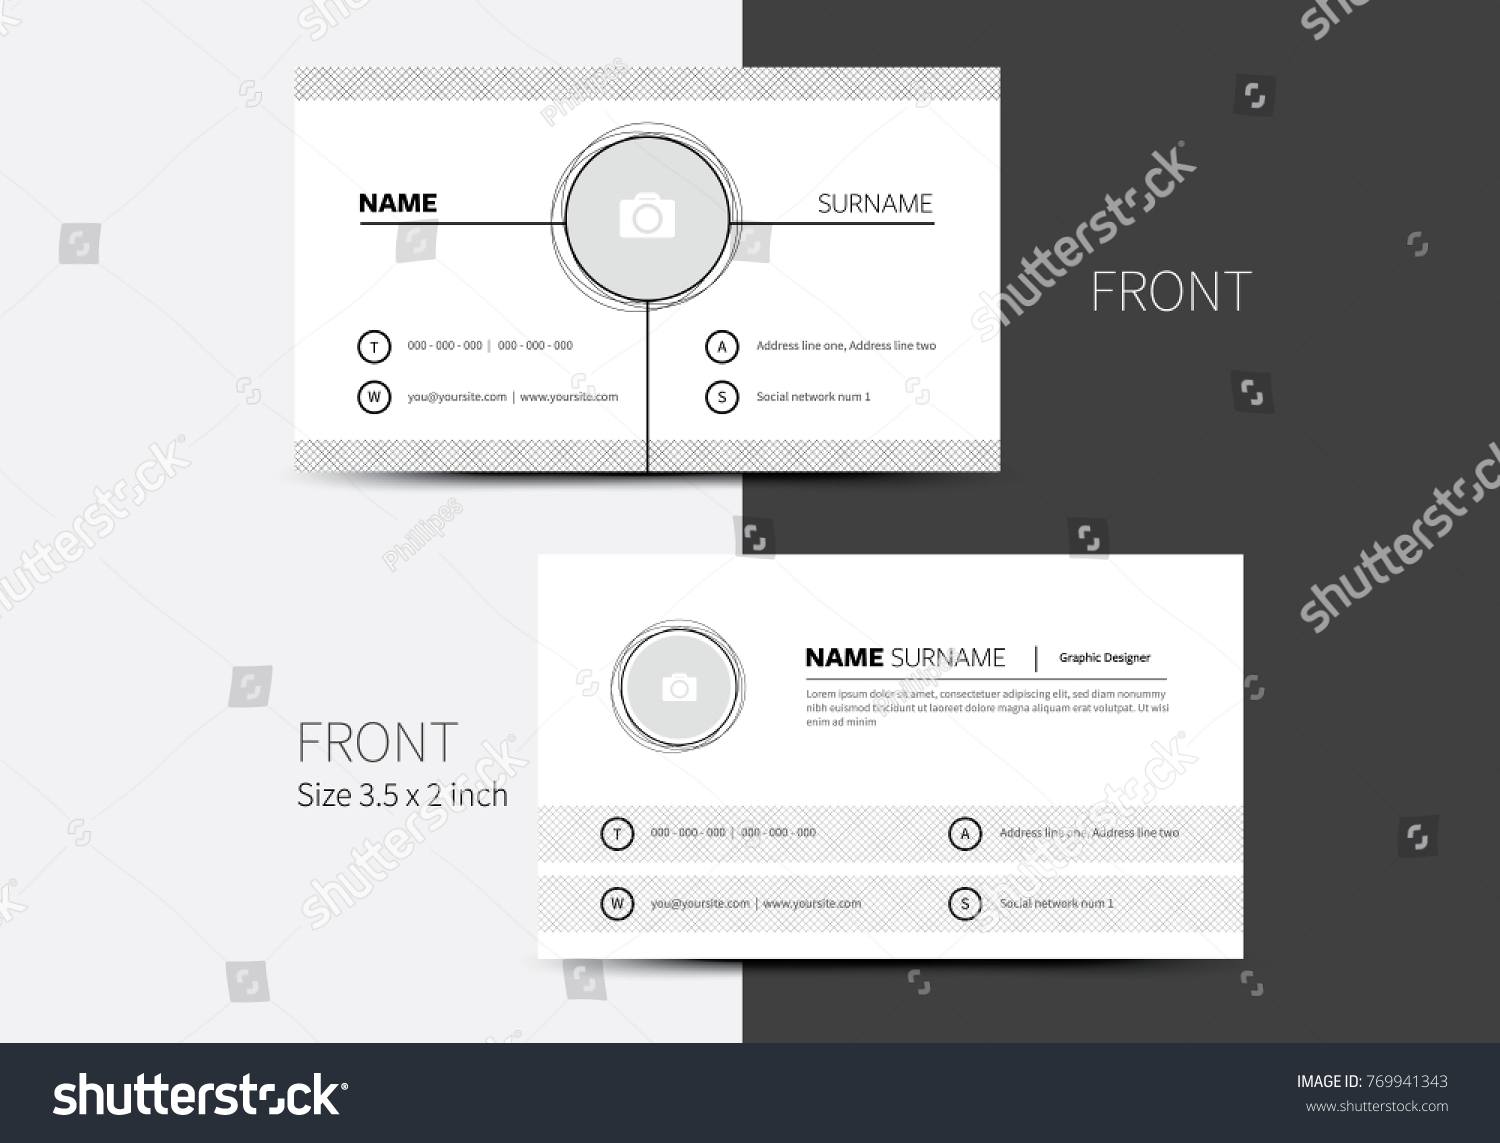 Vector business card layout grating net stock vector 769941343 vector business card layout with grating or net background in clean graphic style idea abstract magicingreecefo Choice Image